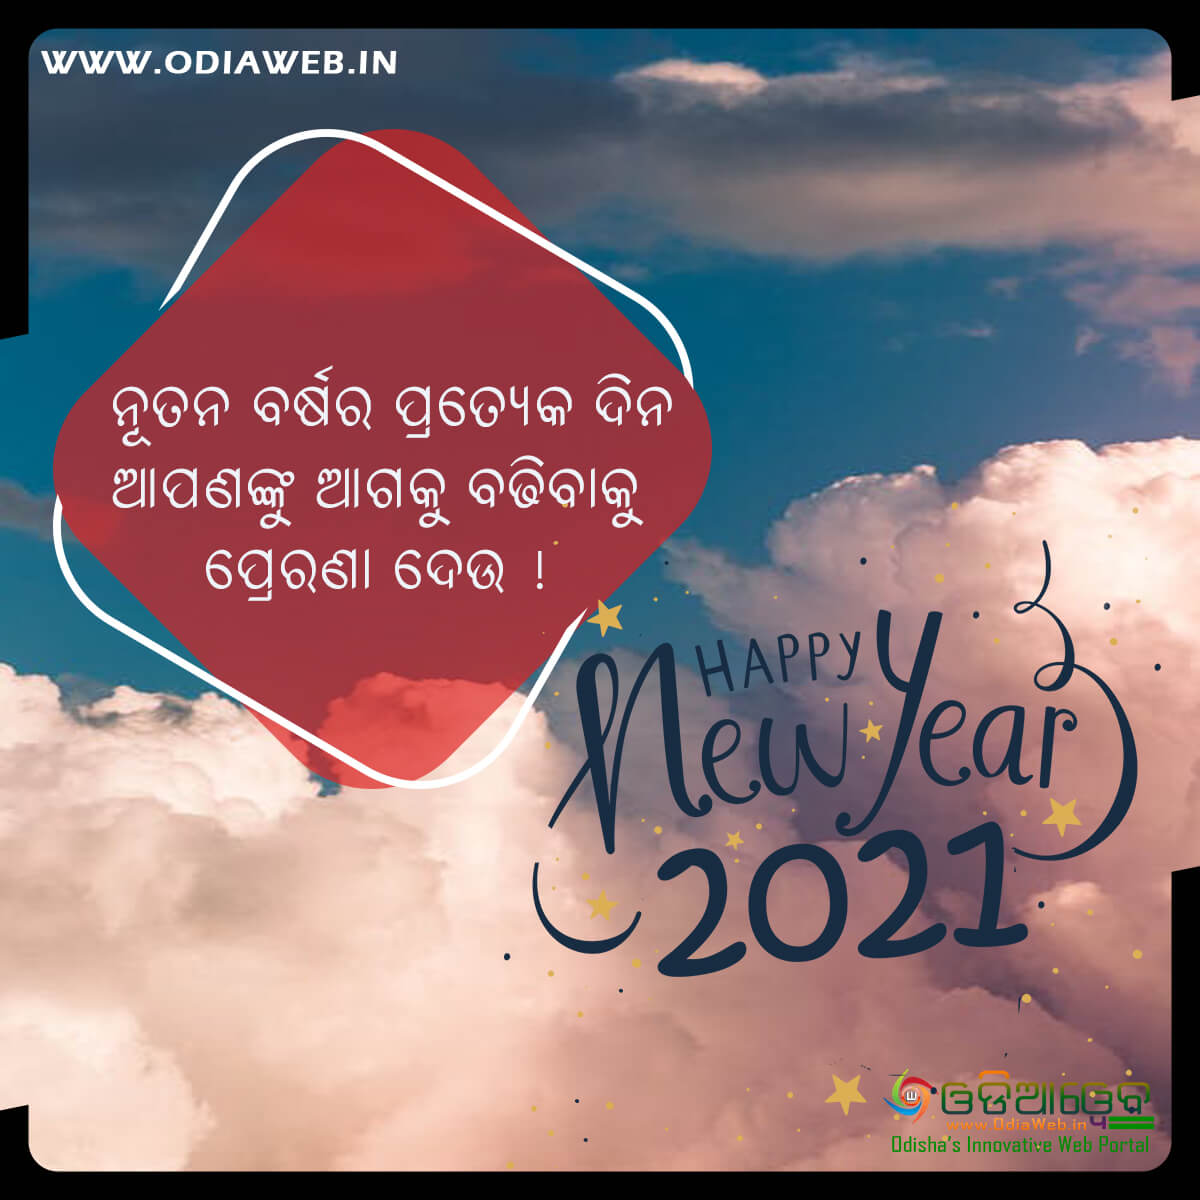 Happy New Year 2021 Wishes Odia (4)